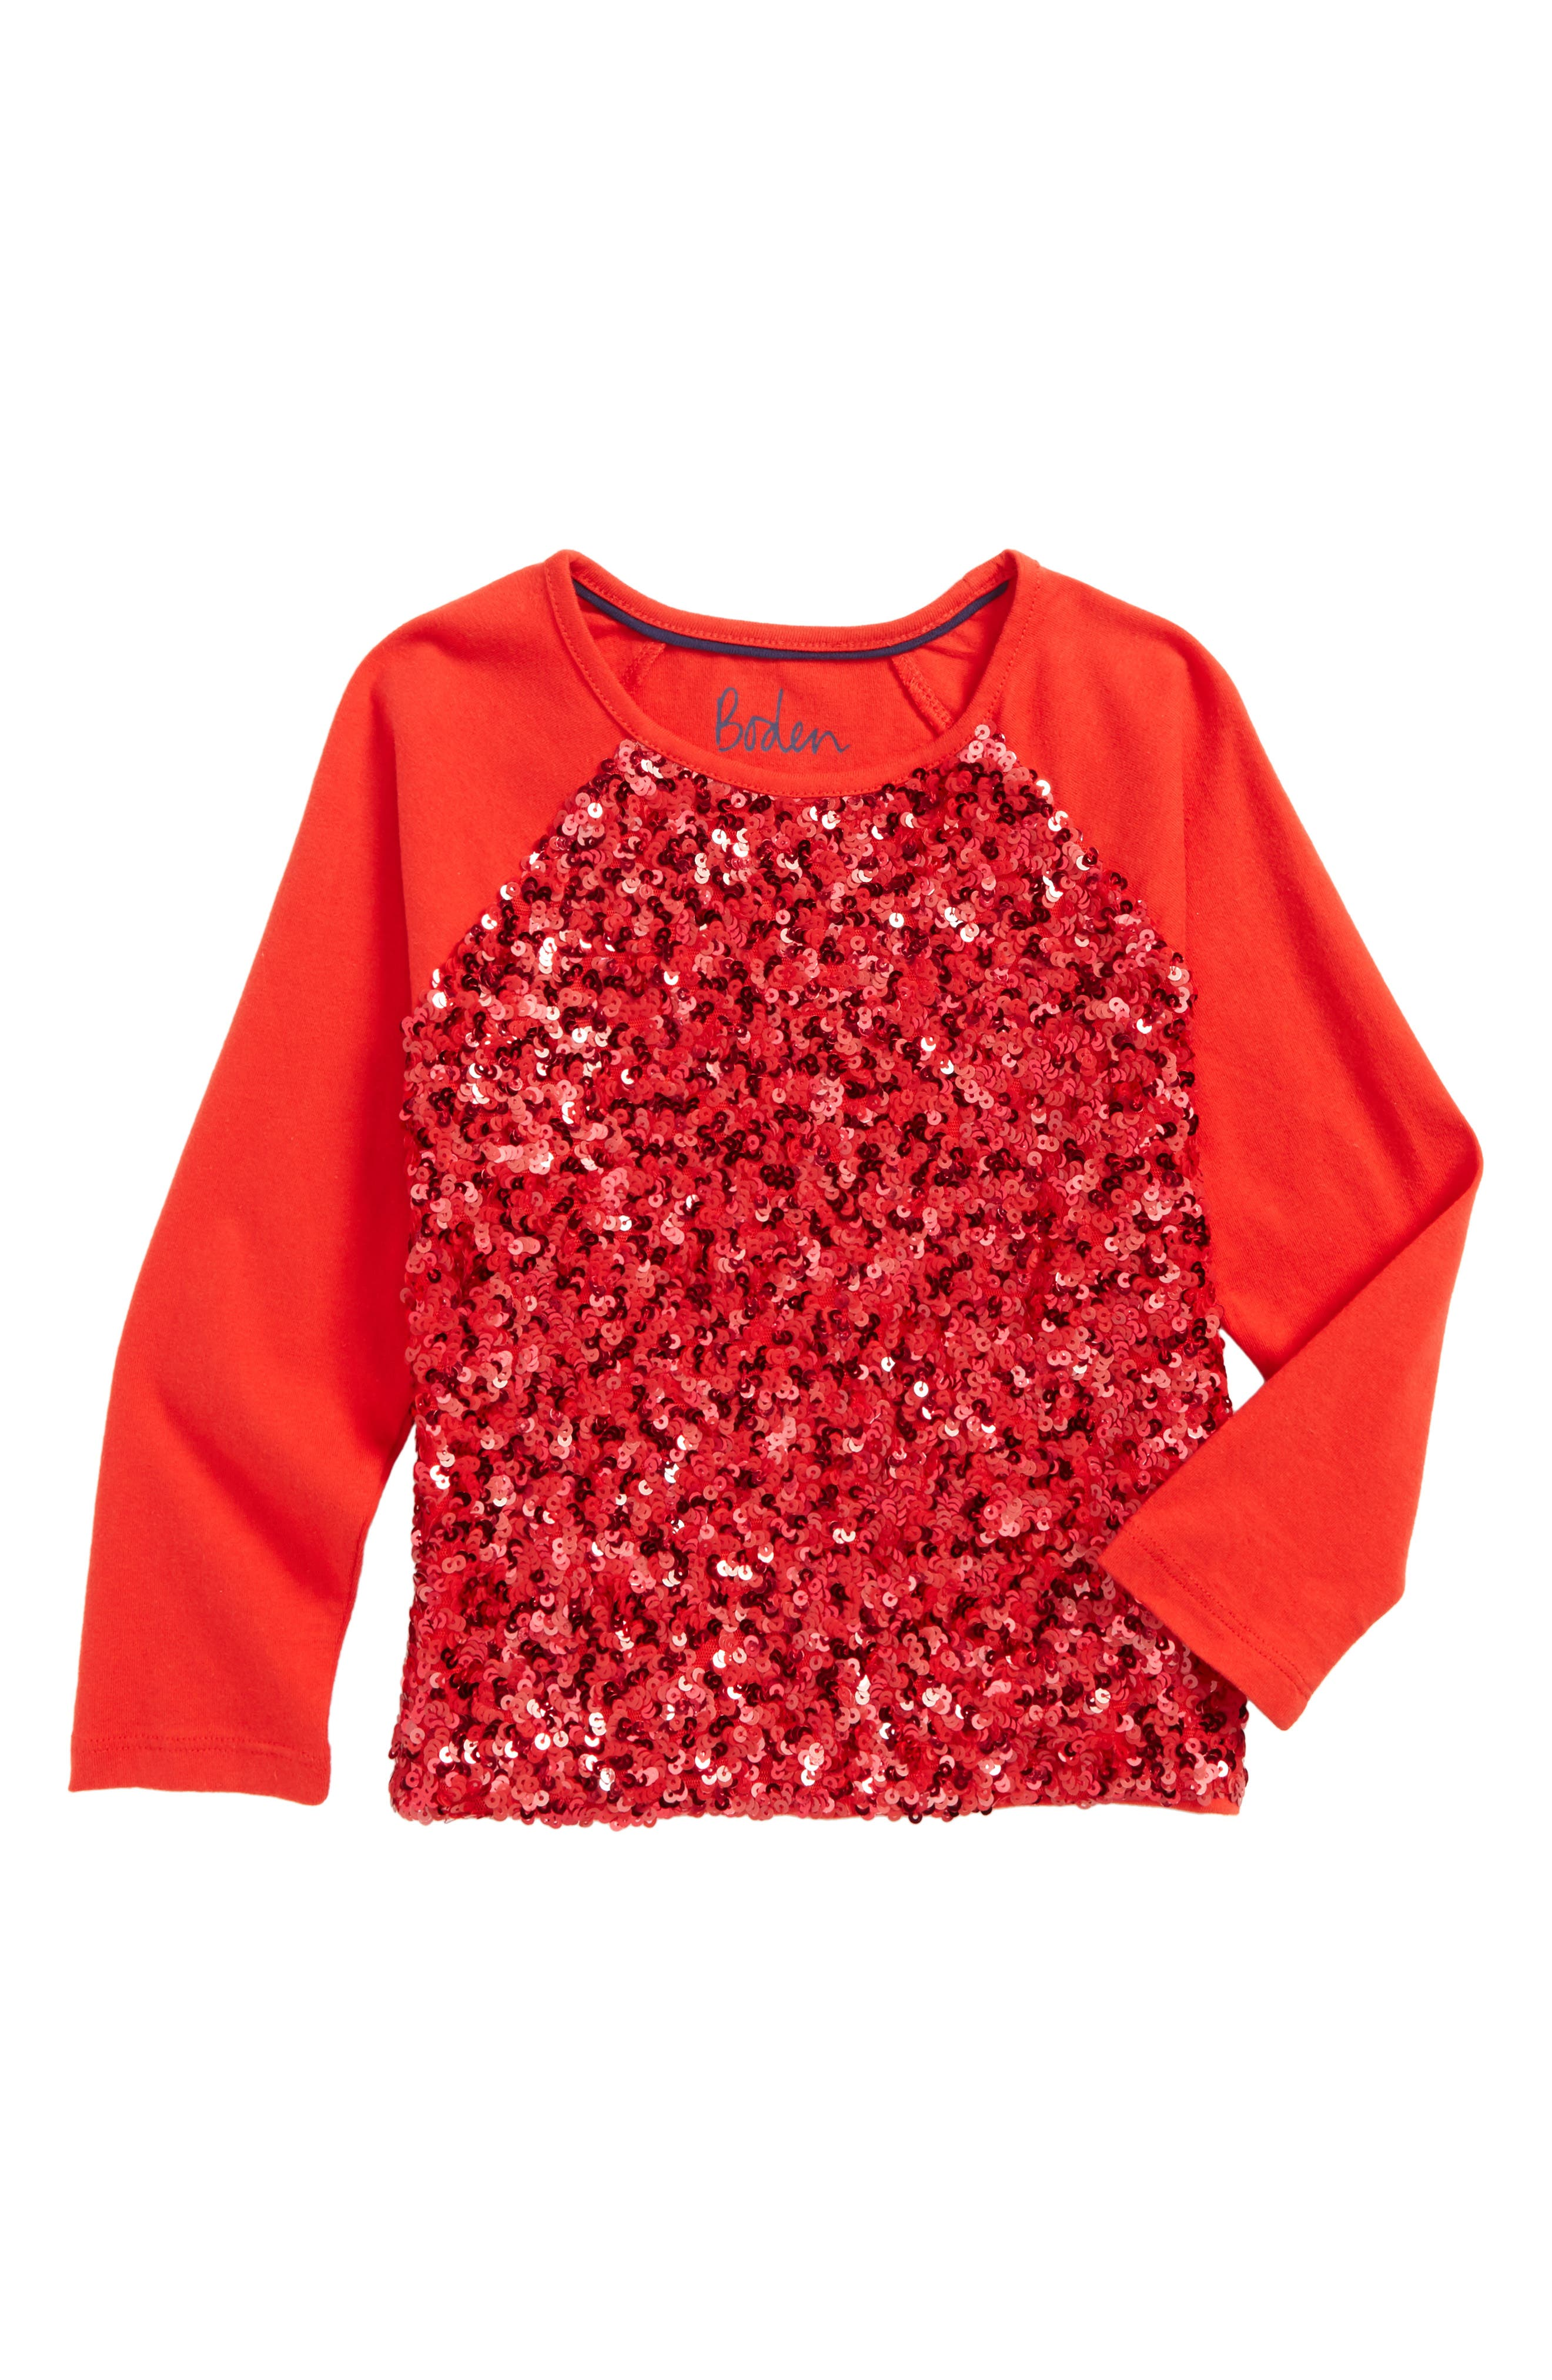 Main Image - Mini Boden Sequin Raglan Tee (Toddler Girls, Little Girls & Big Girls)